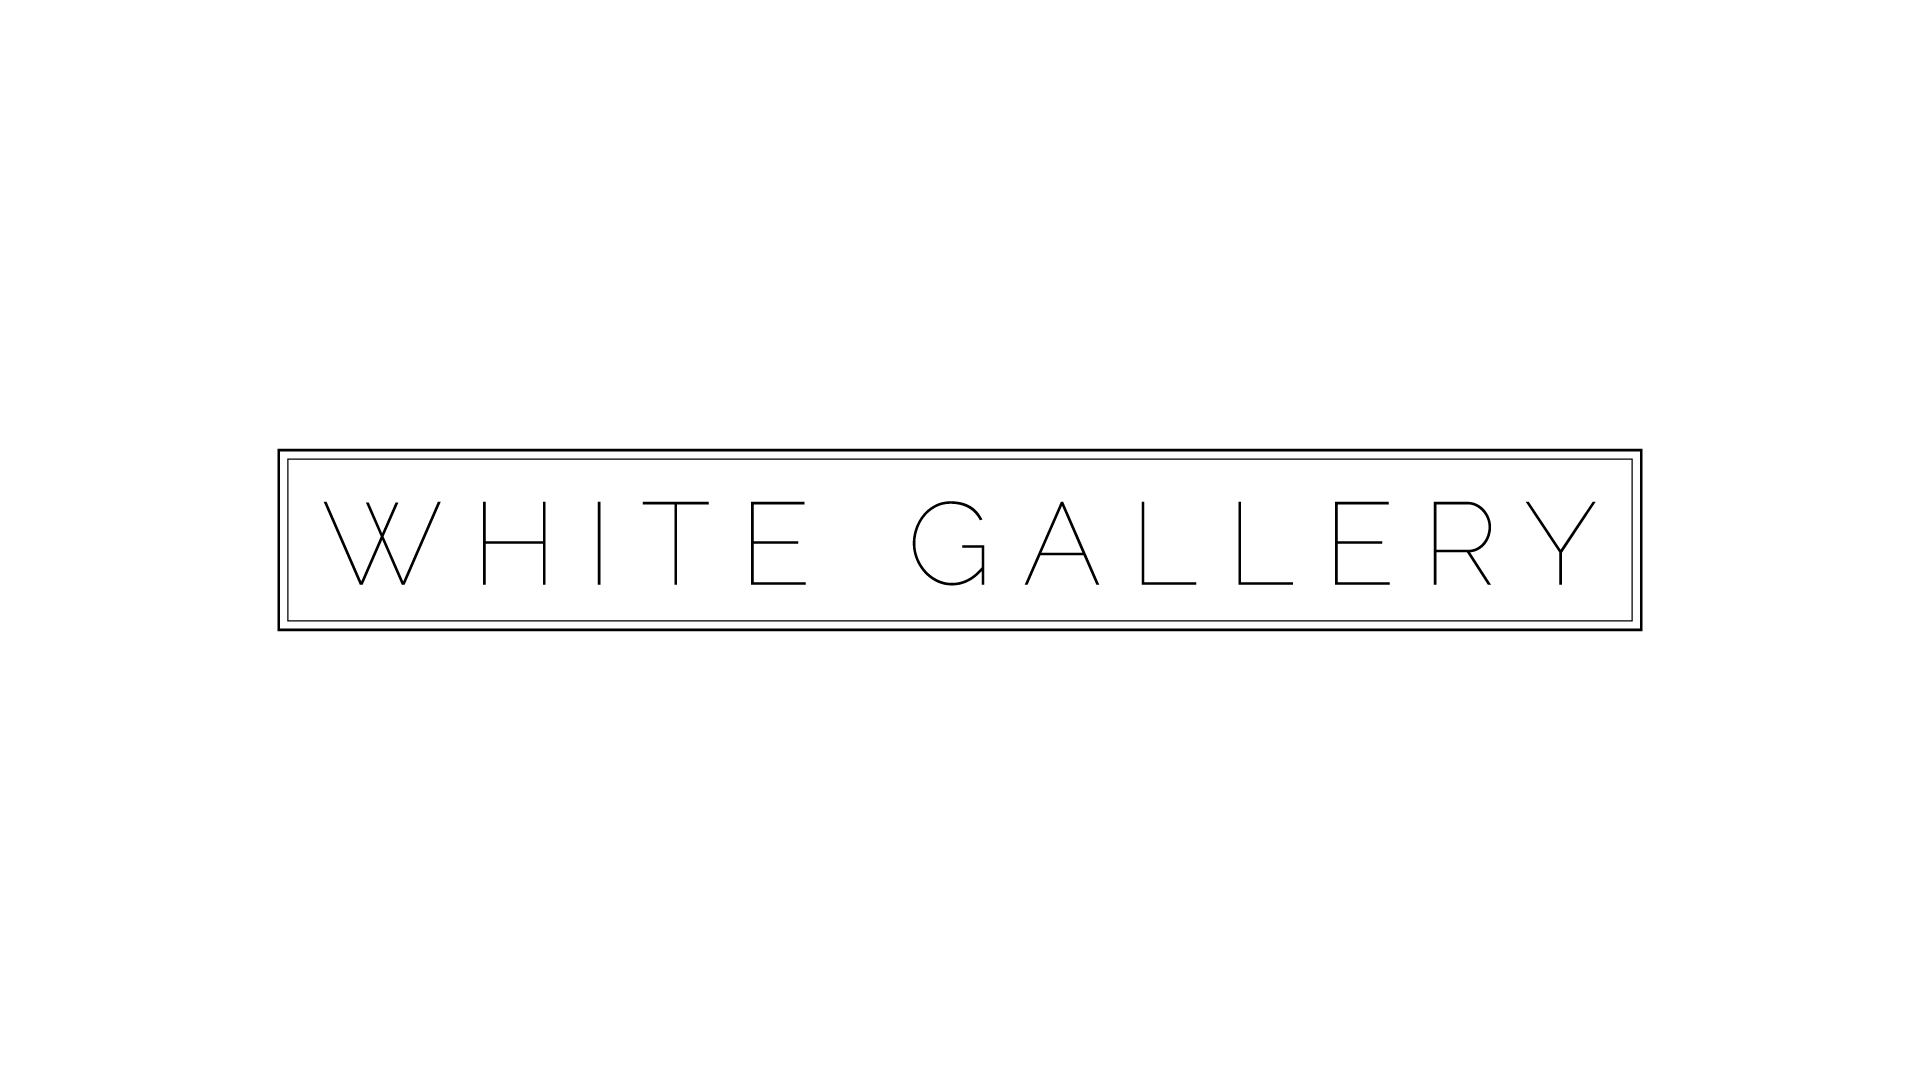 White Gallery logo by Dustin Drake